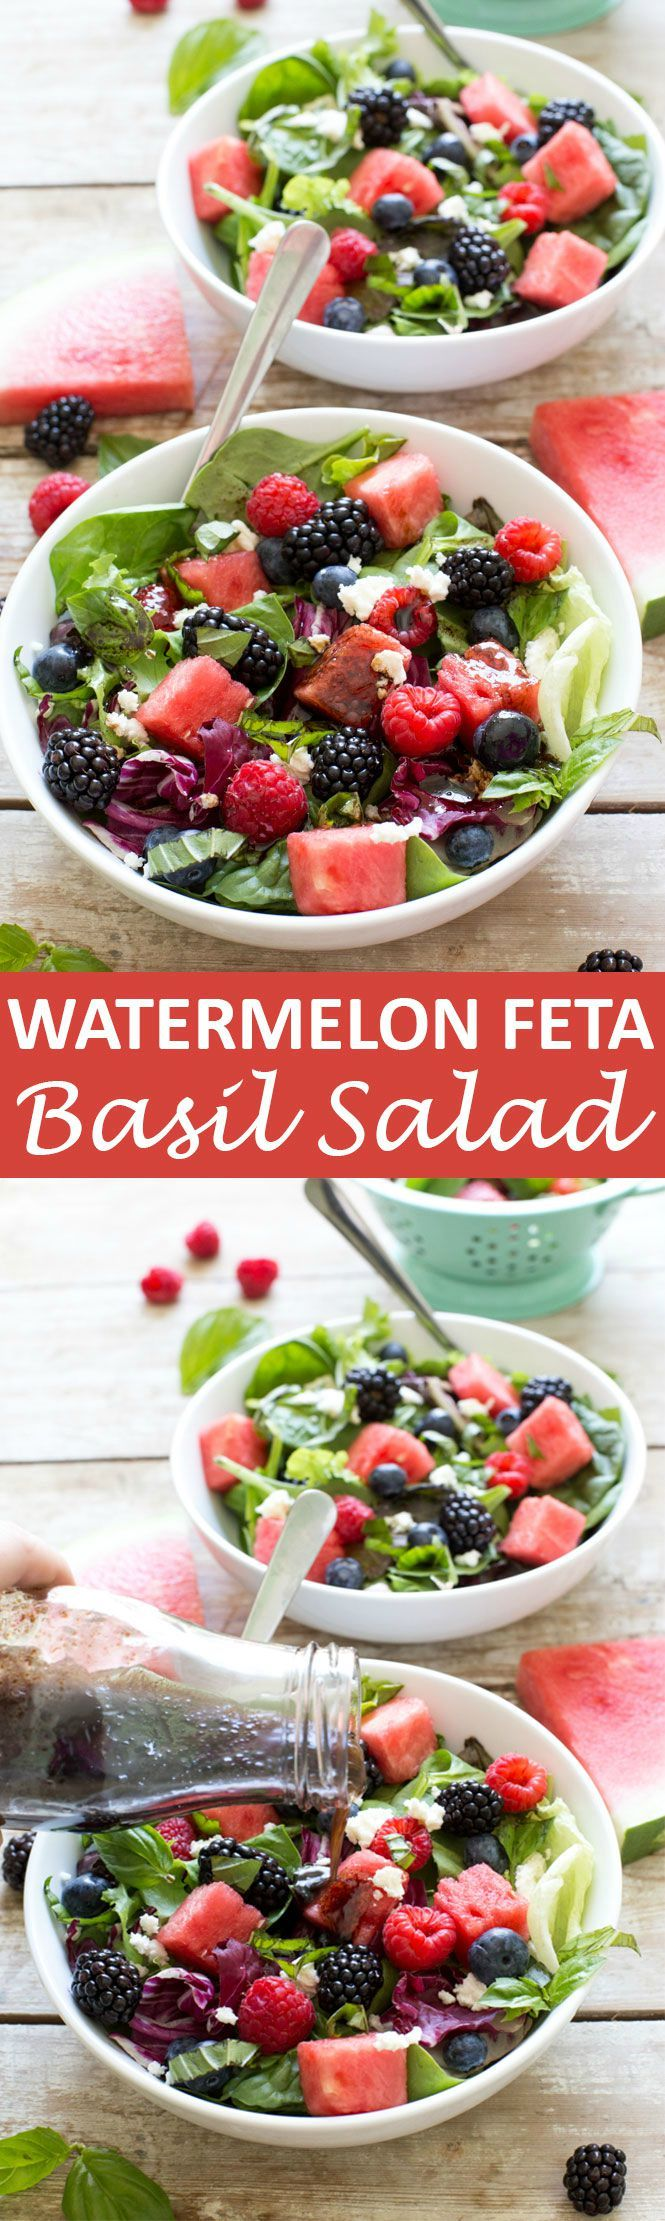 Watermelon Feta Salad loaded with tons of fresh berries and basil. Drizzled with…